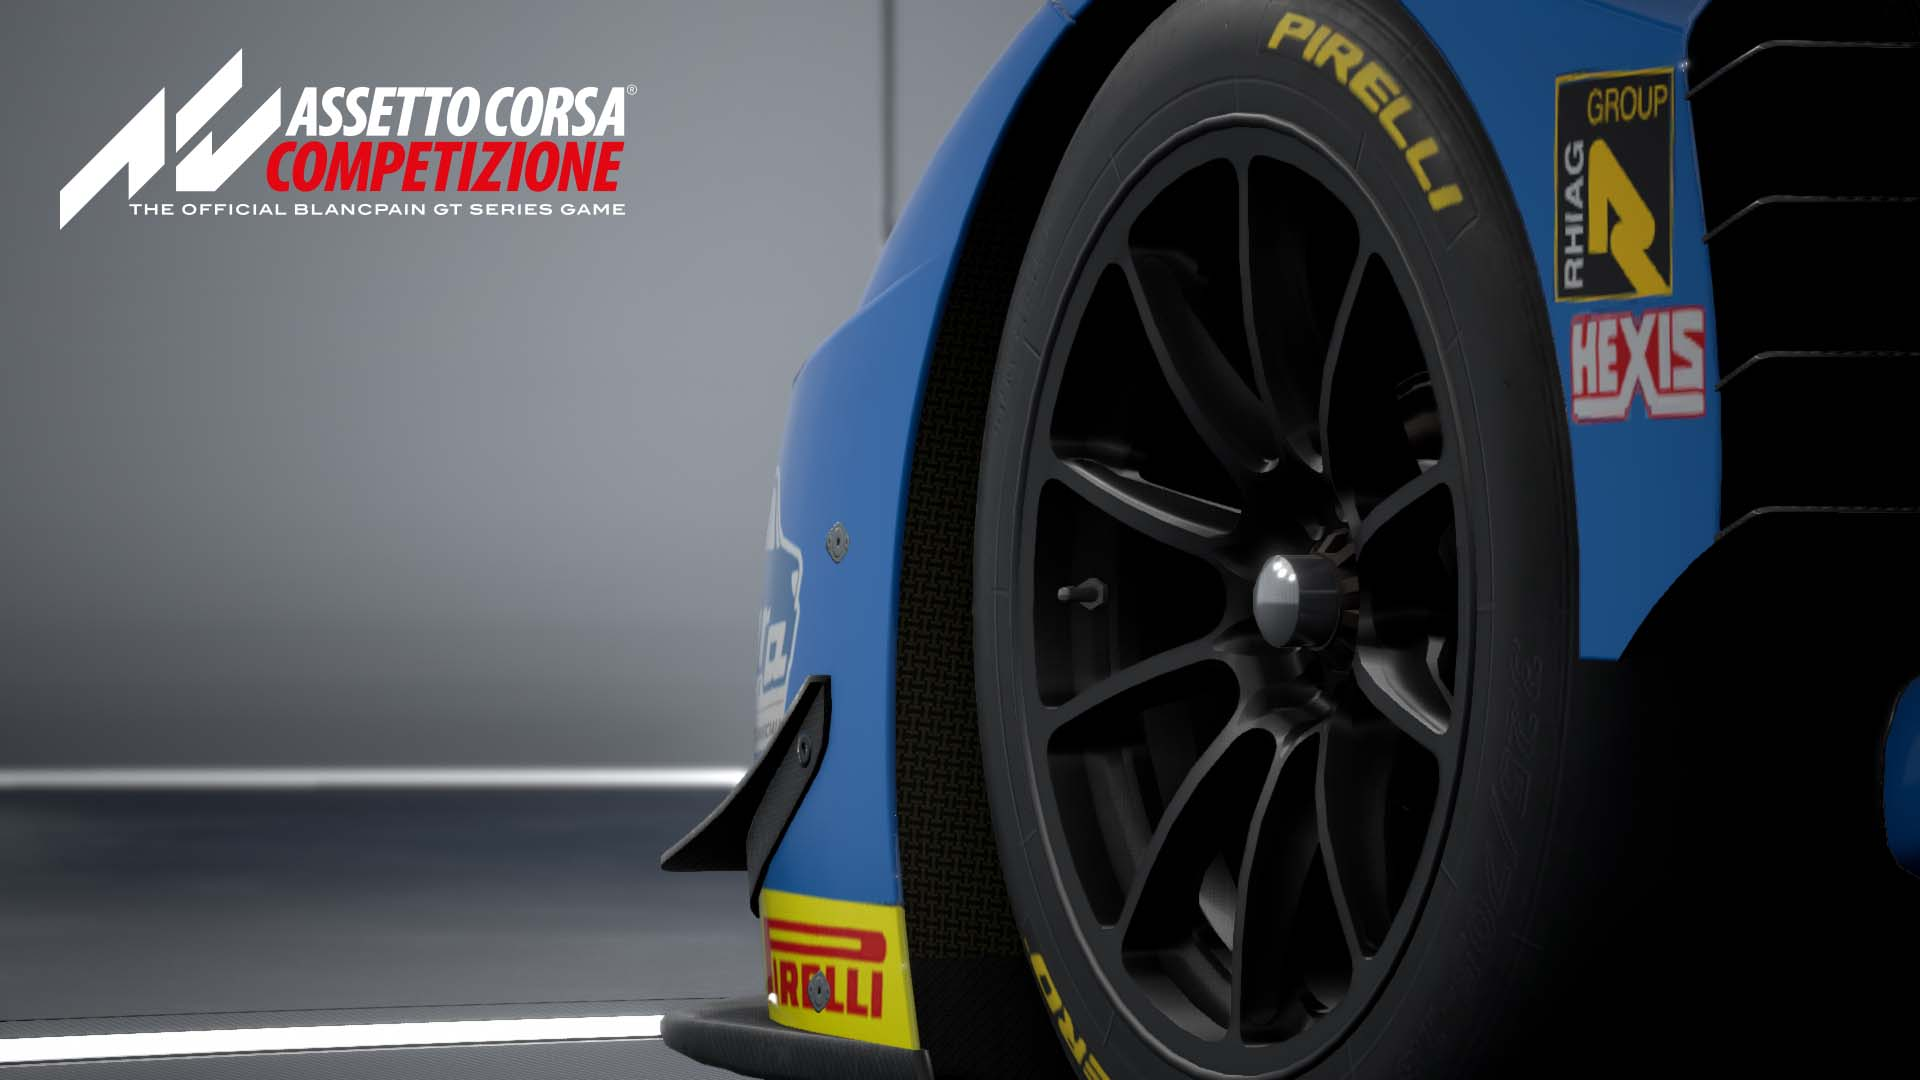 shop.gperformance.eu - Assetto Corsa Competizione Early Access Release1 01